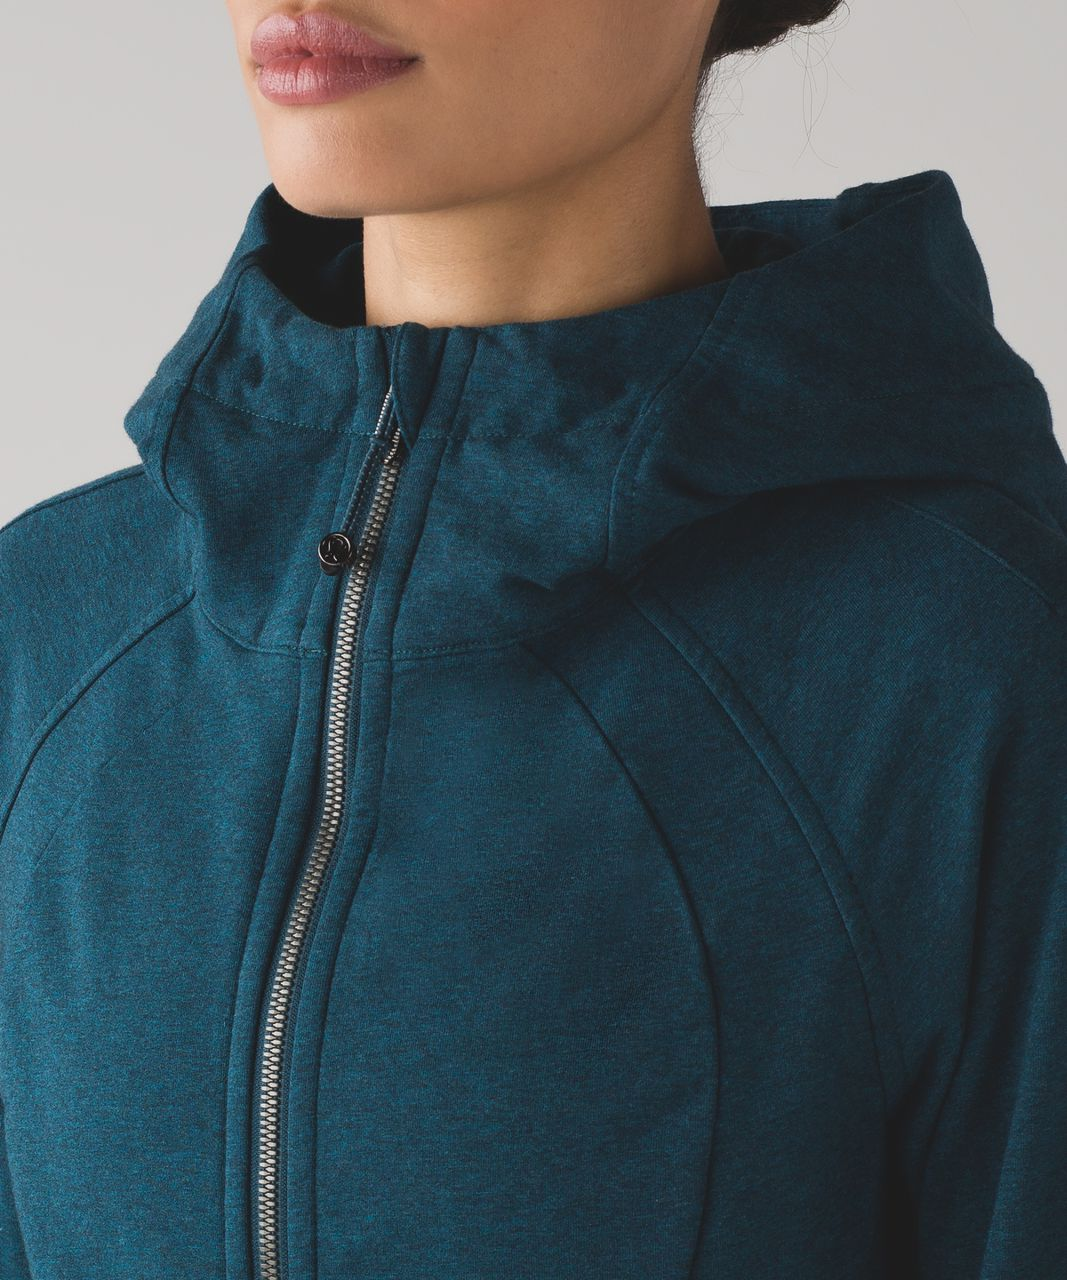 Lululemon Scuba Hoodie IV (Terry) - Heathered Alberta Lake